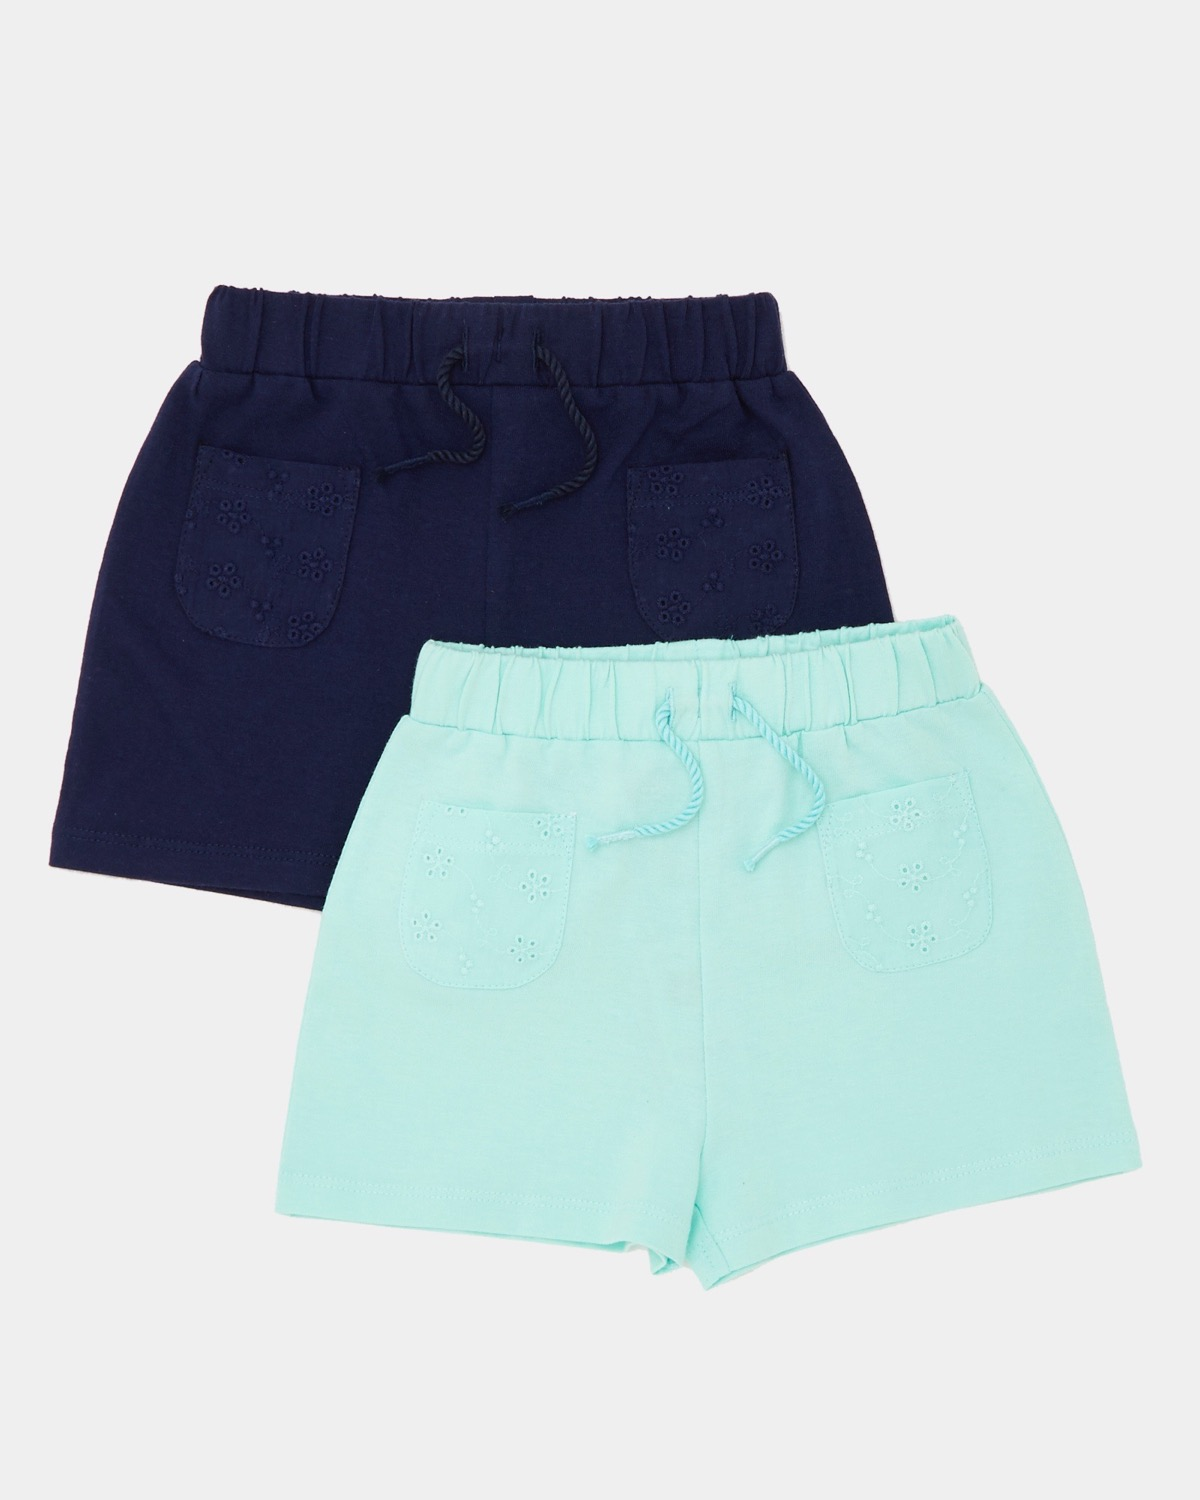 Broderie Pocket Short - Pack Of 2 (6 months-4 years)